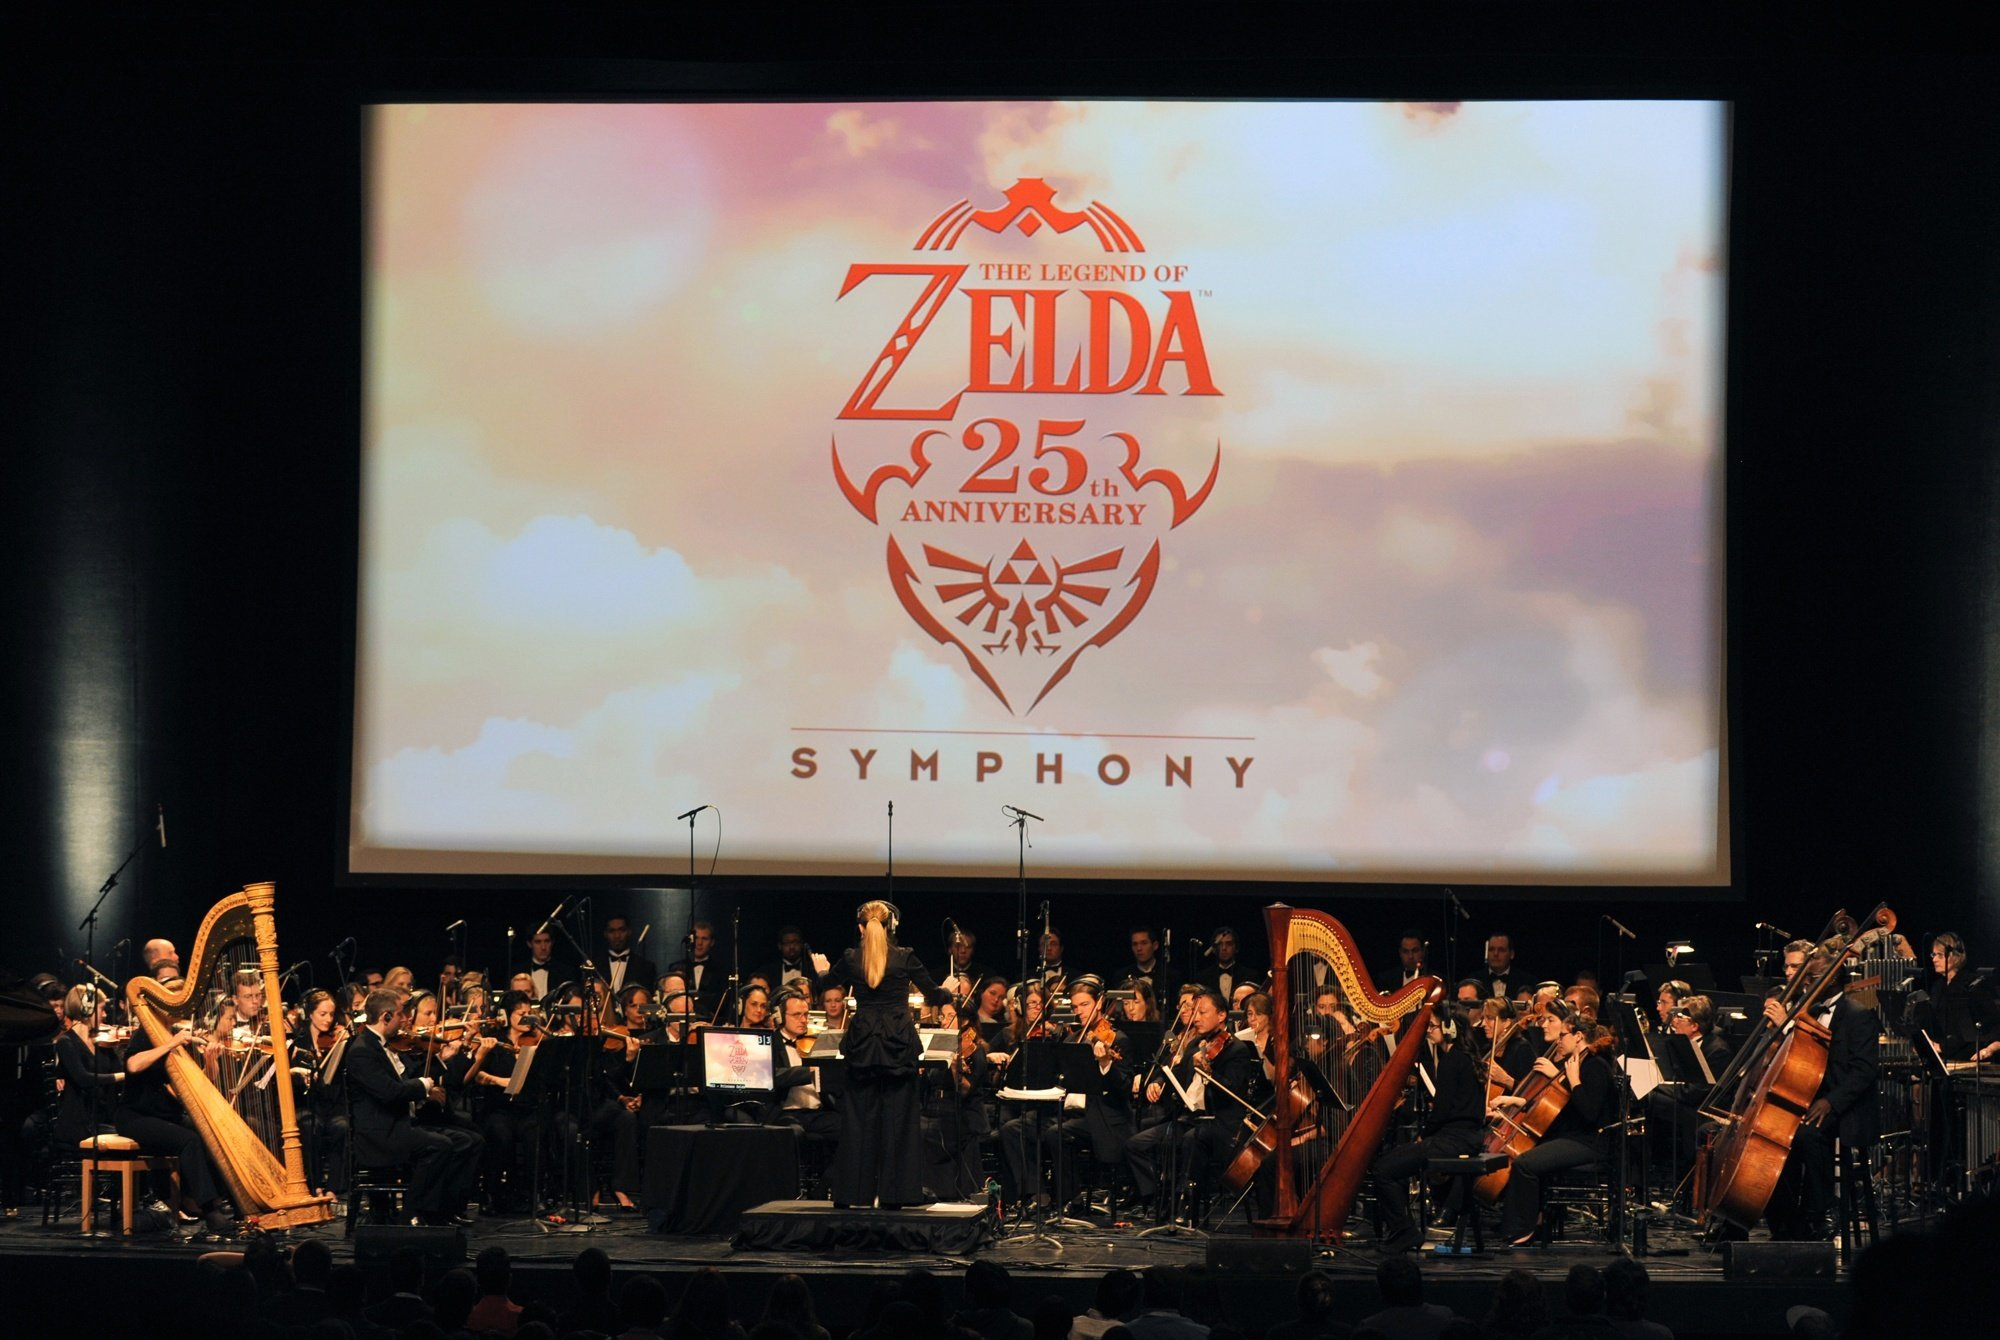 Nintendo Legend of Zelda 25th Anniversary Symphony